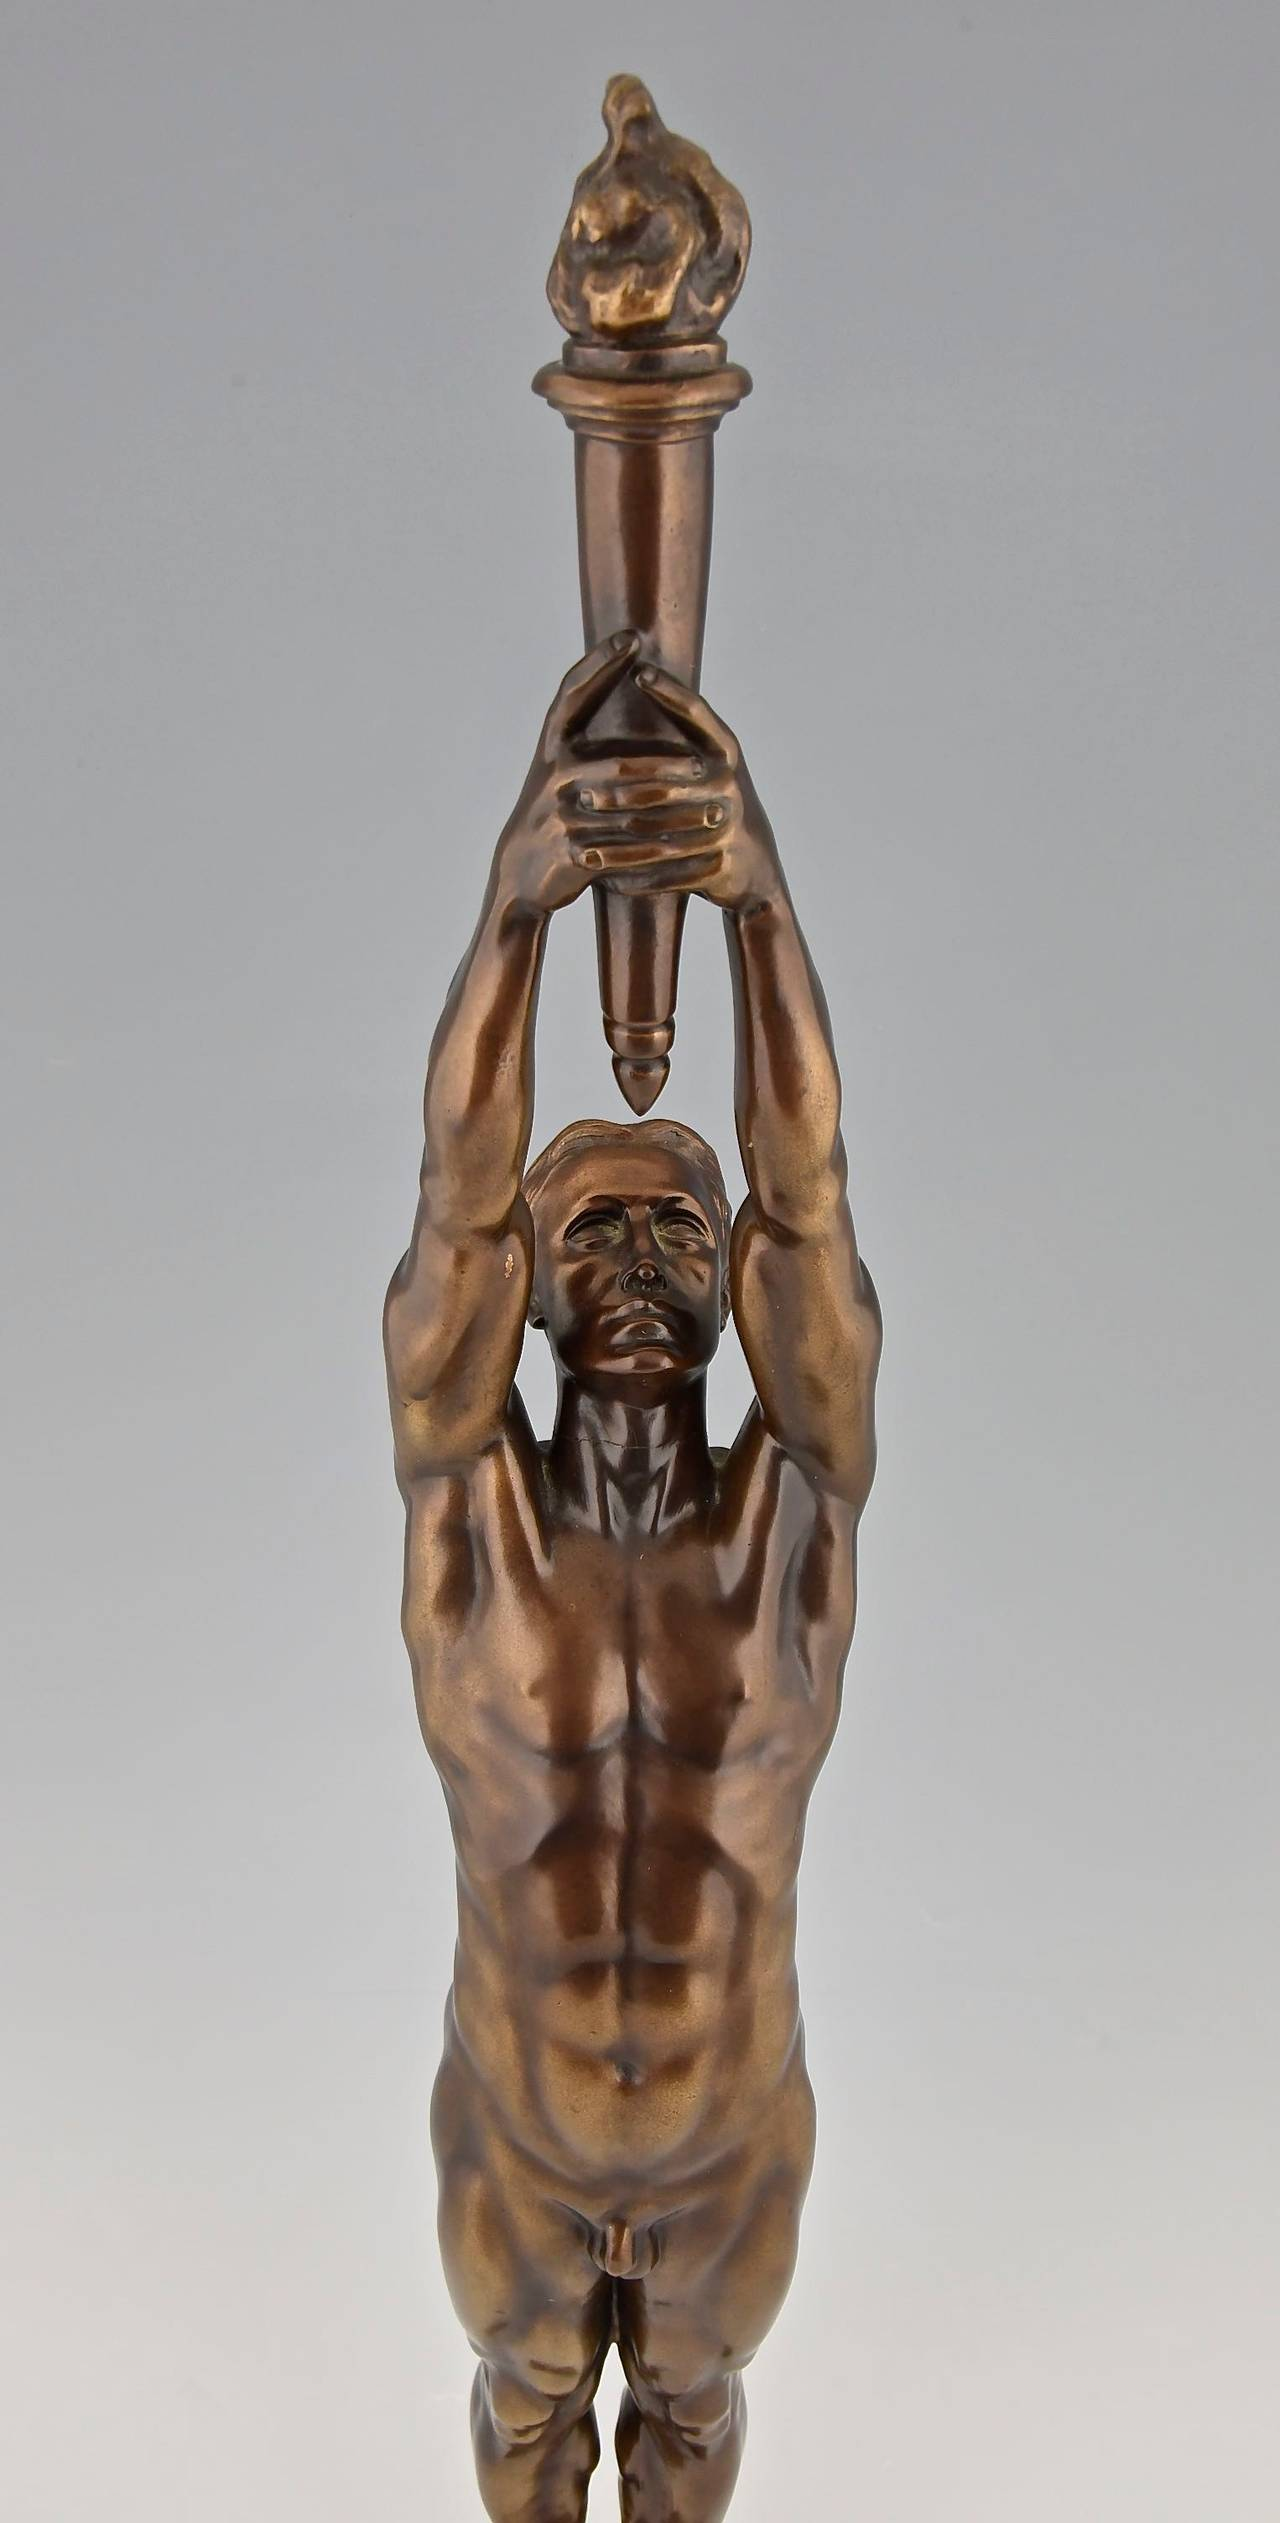 Bronze Sculpture of a Male Nude with Torch by A. Puttemans, Belgium, 1912 1